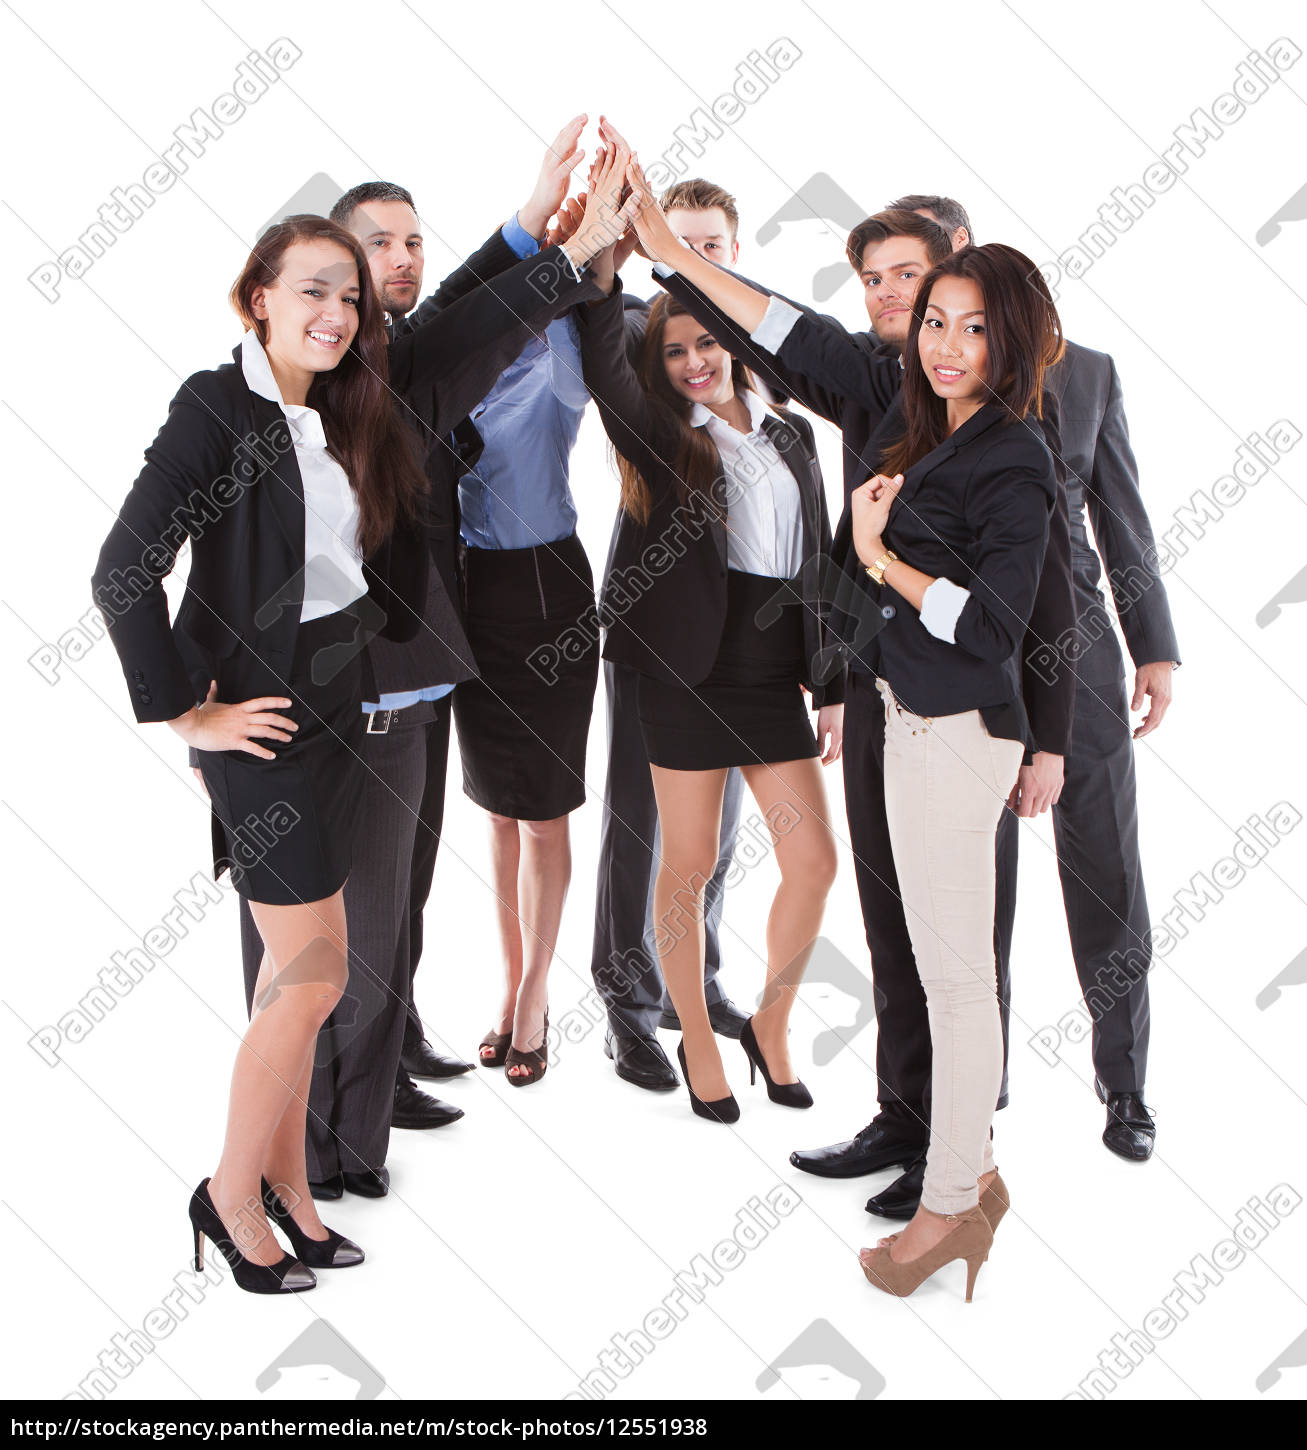 businesspeople, making, high, five, gesture - 12551938